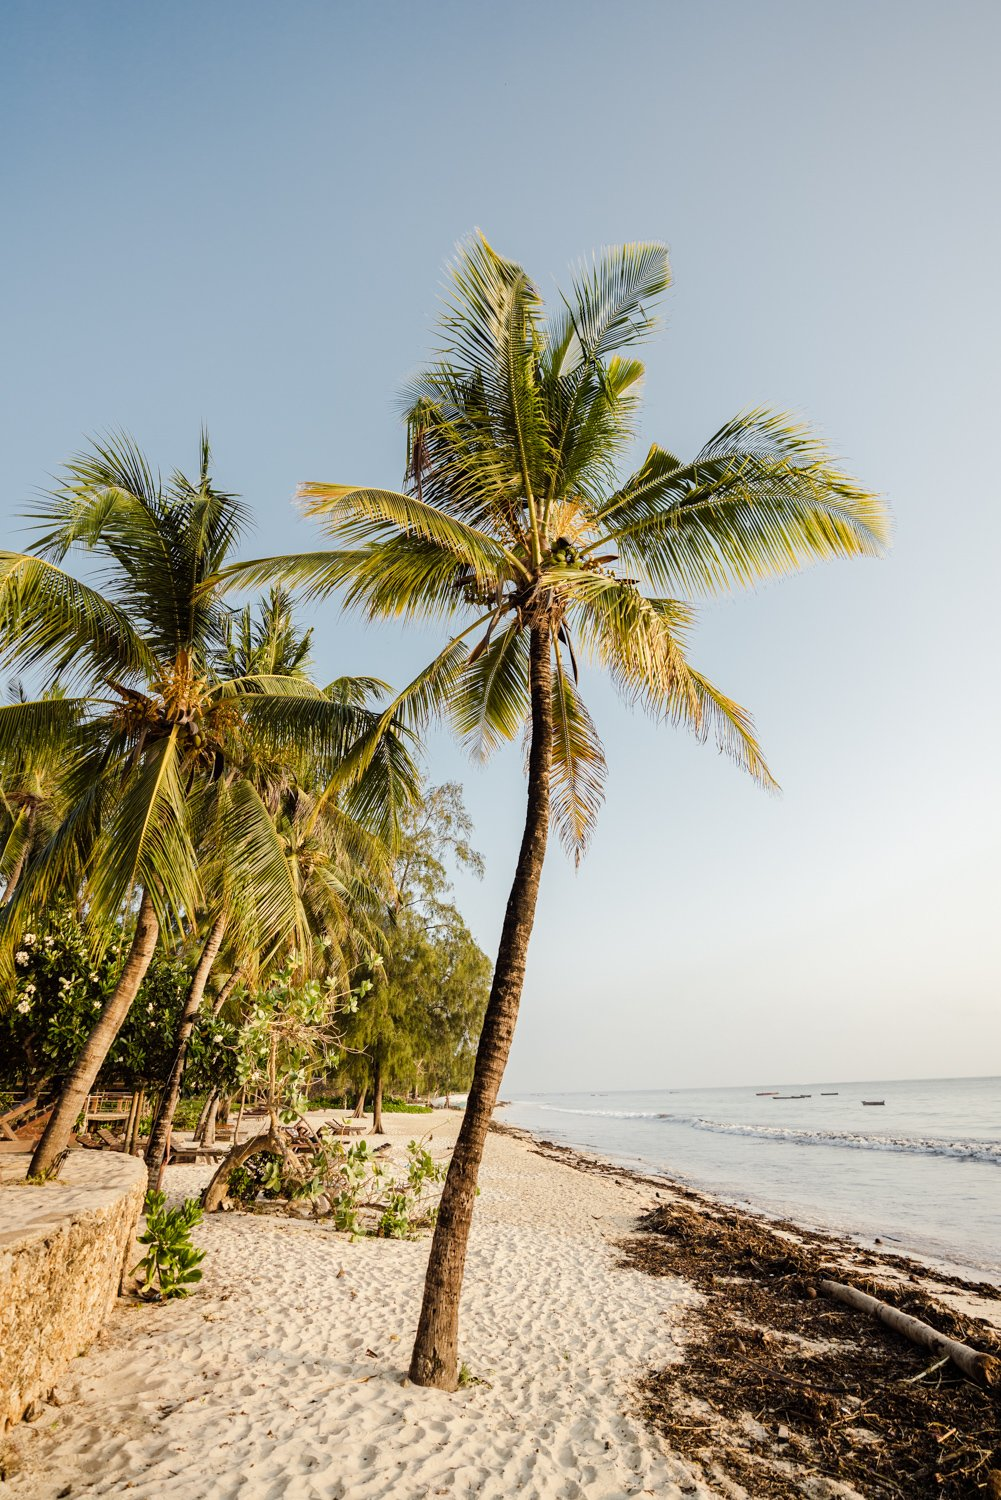 Palm trees on malindi beach in kenya